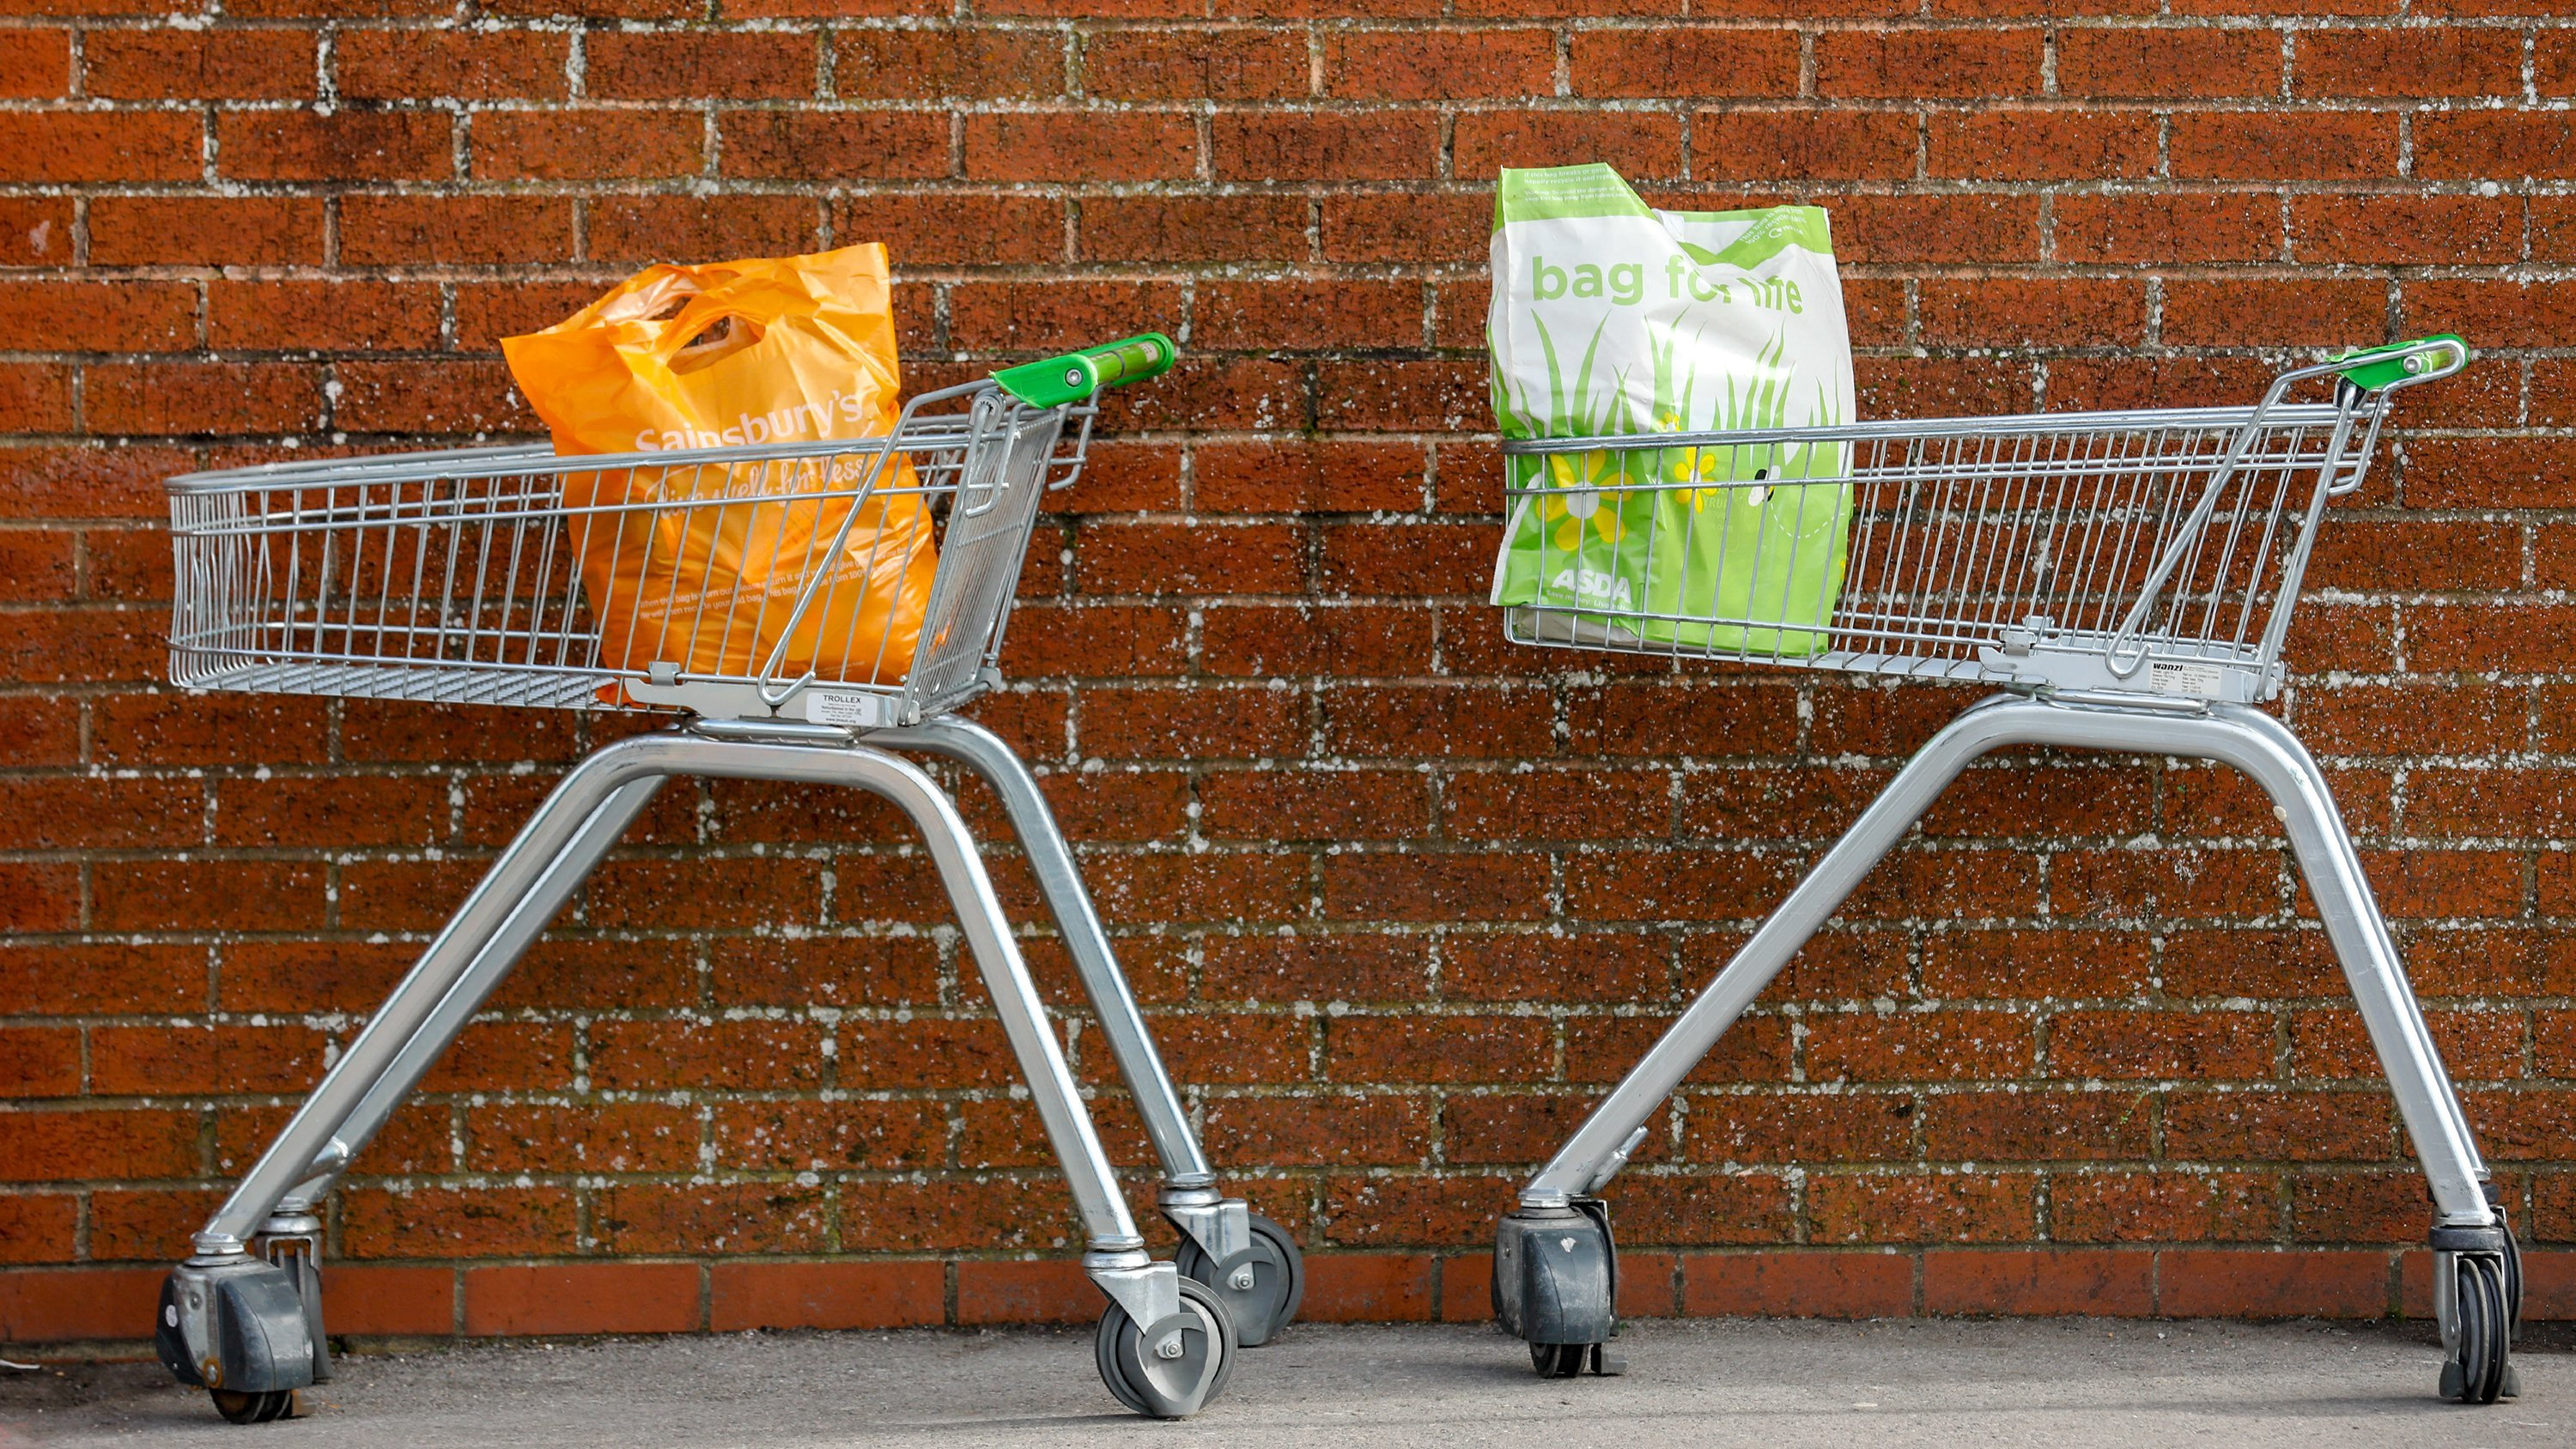 Sainsbury's commits to cutting its use of plastics by 50%